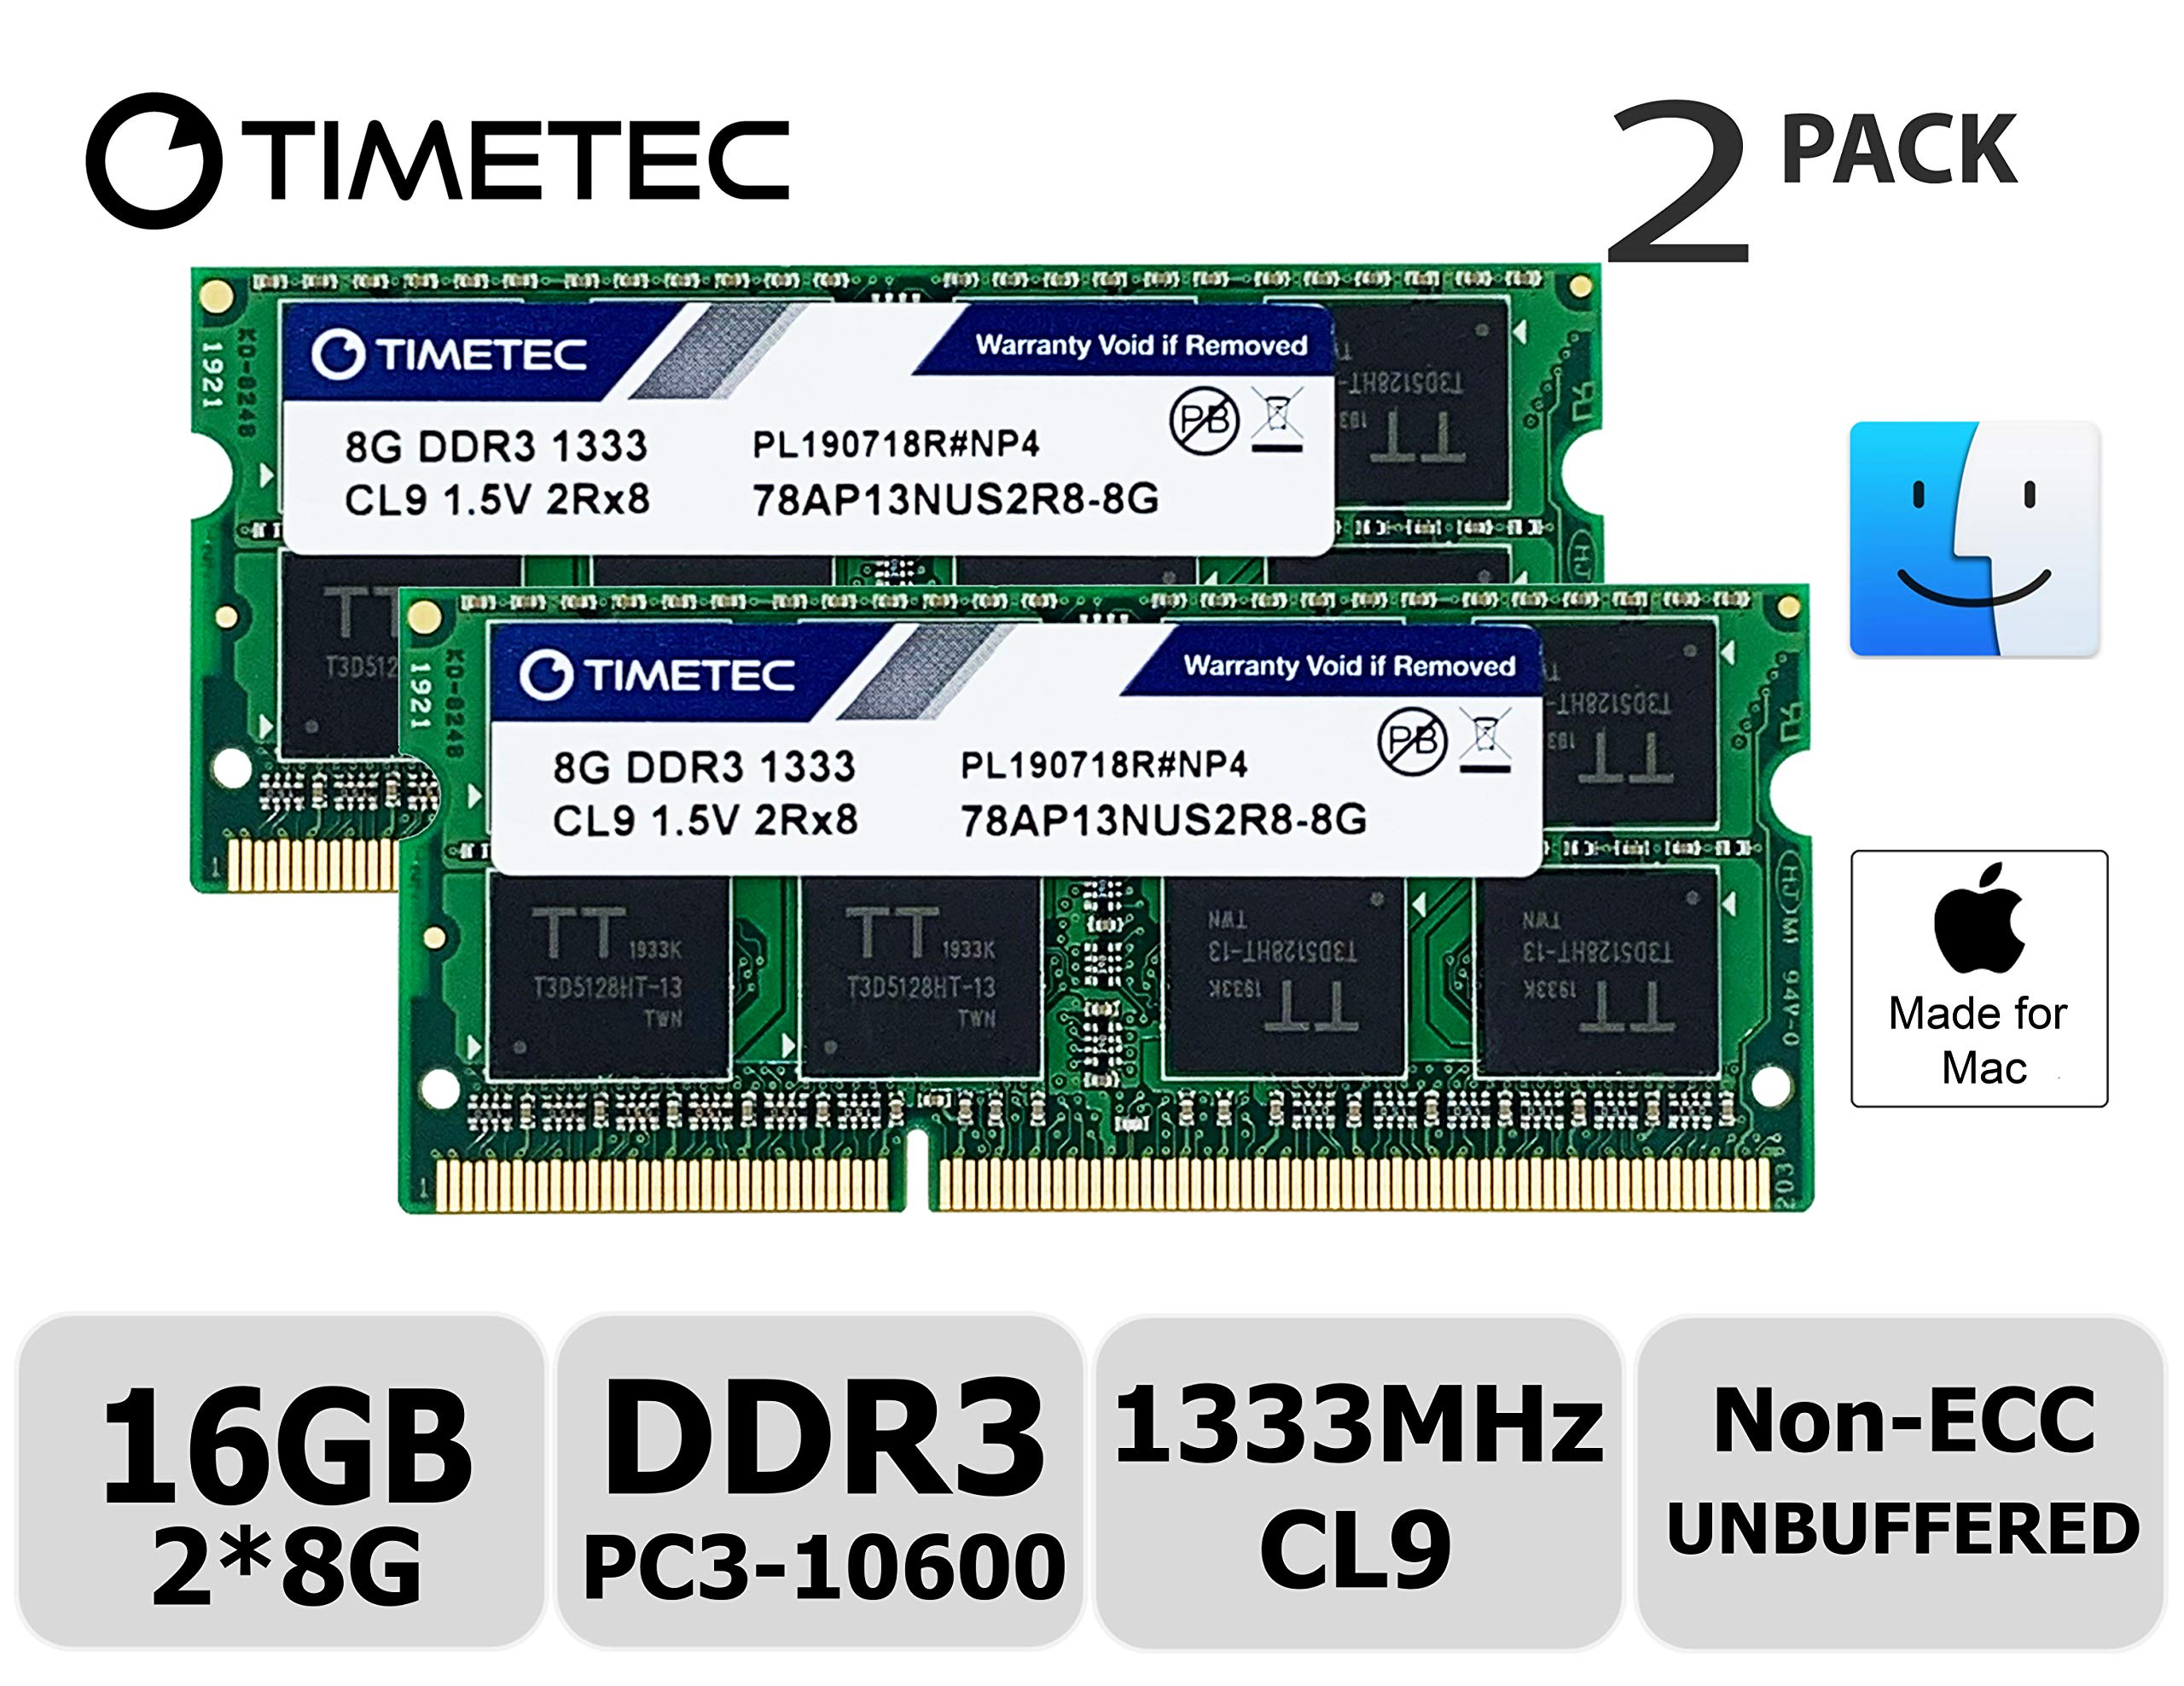 Memoria Ram 16gb Timetec Hynix Ic Kit(2x8gb) Compatible Para Apple Ddr3 1333mhz Pc3-10600 Para Early/late 2011 13/15/17